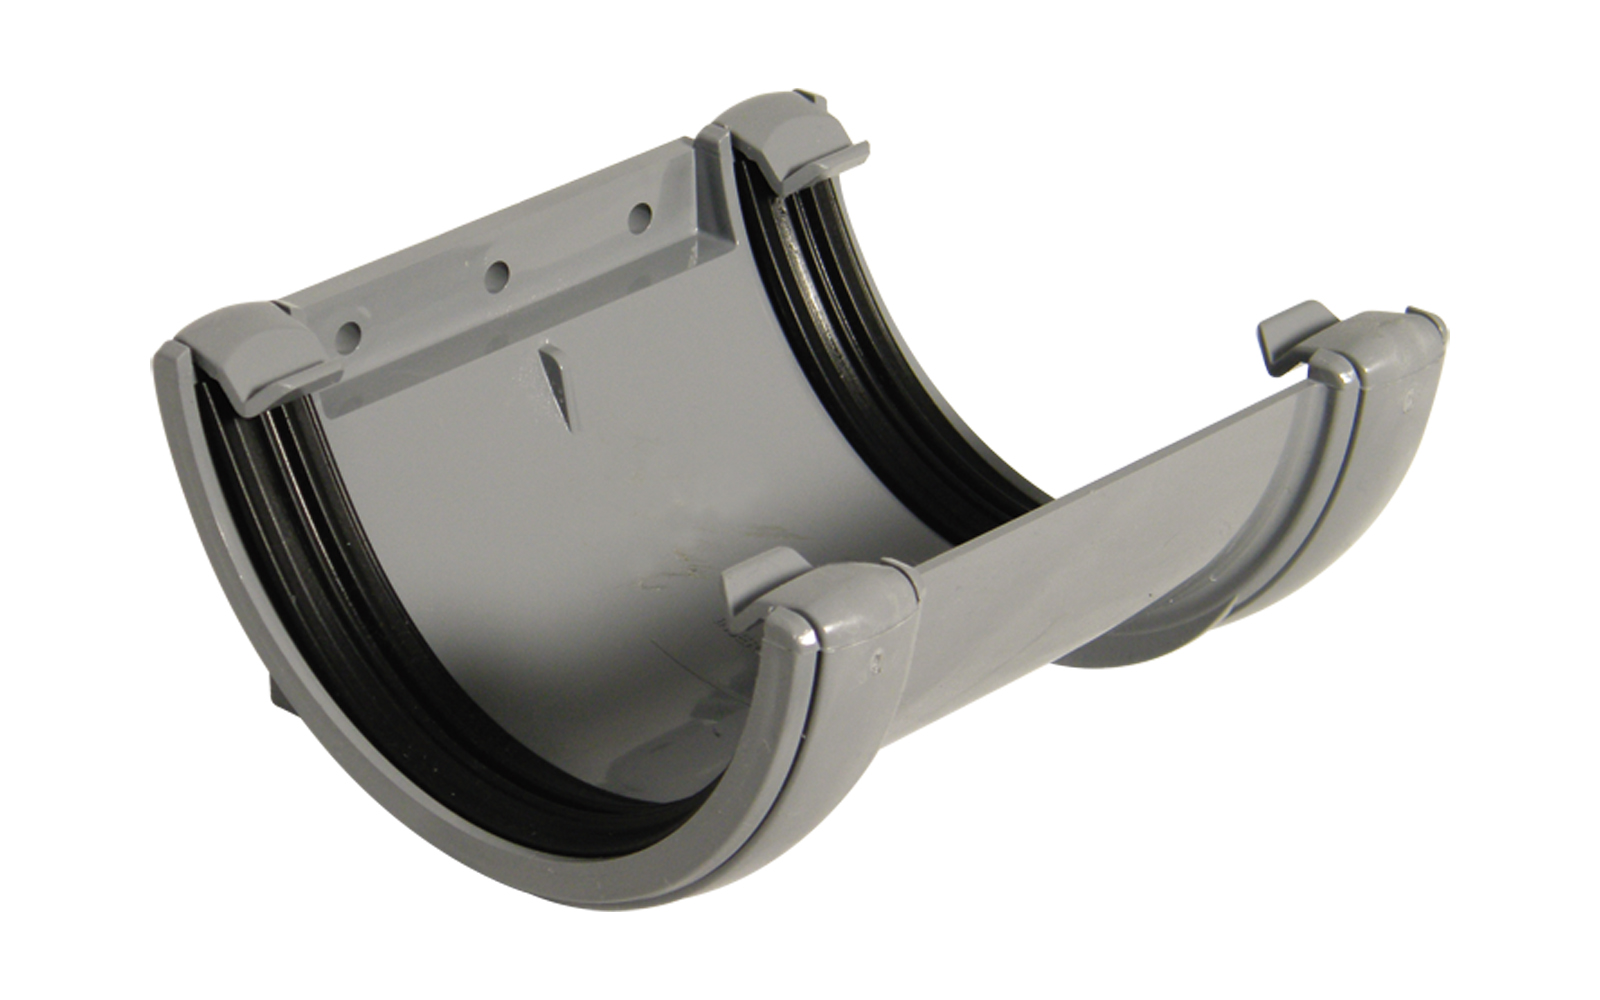 Floplast RU1GR 112mm Half Round Gutter - Union Bracket - Grey